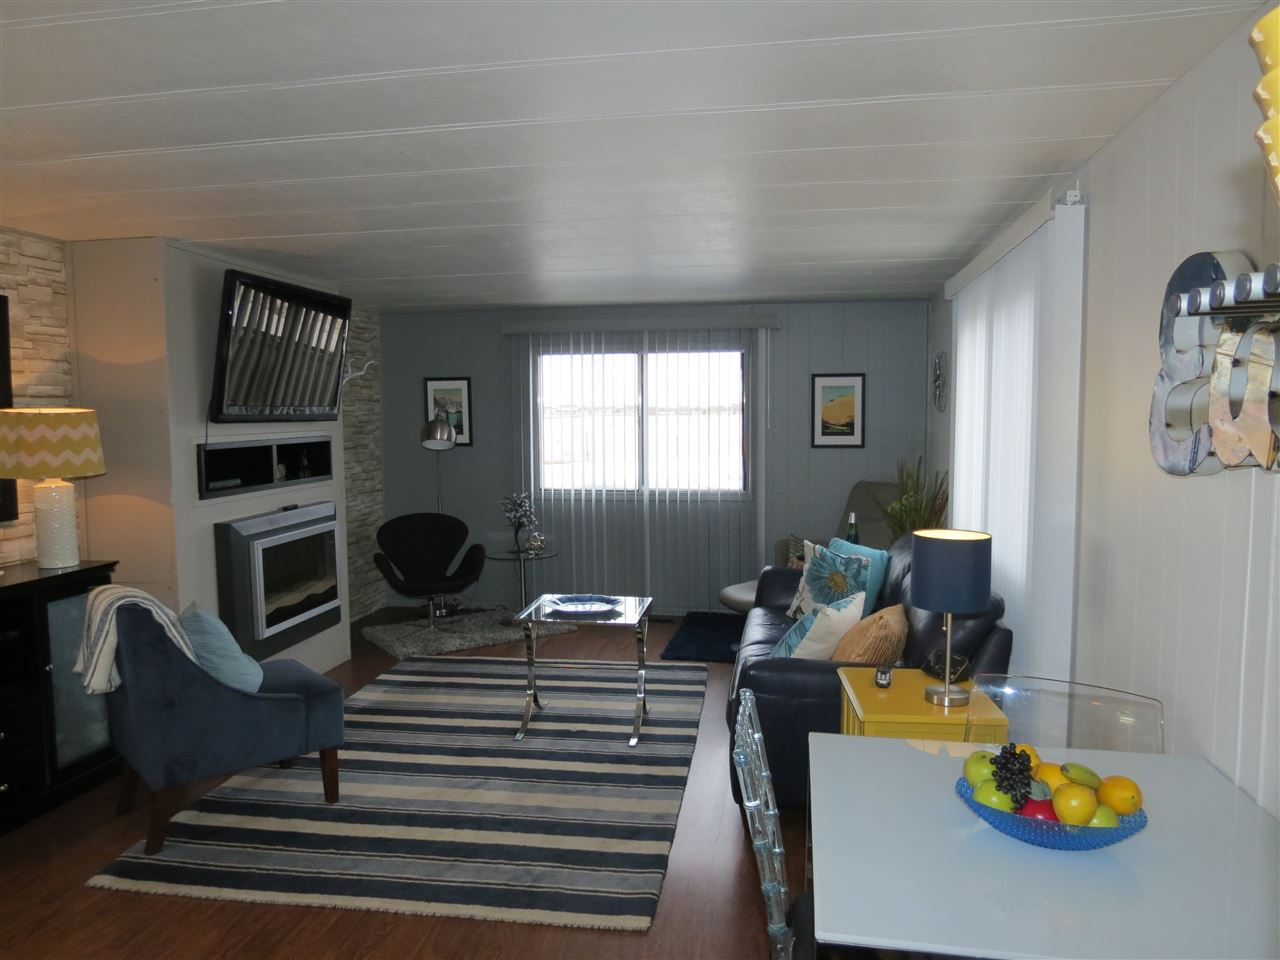 Photo 7: 55231 RR 261: Rural Sturgeon County Manufactured Home for sale : MLS® # E4051426